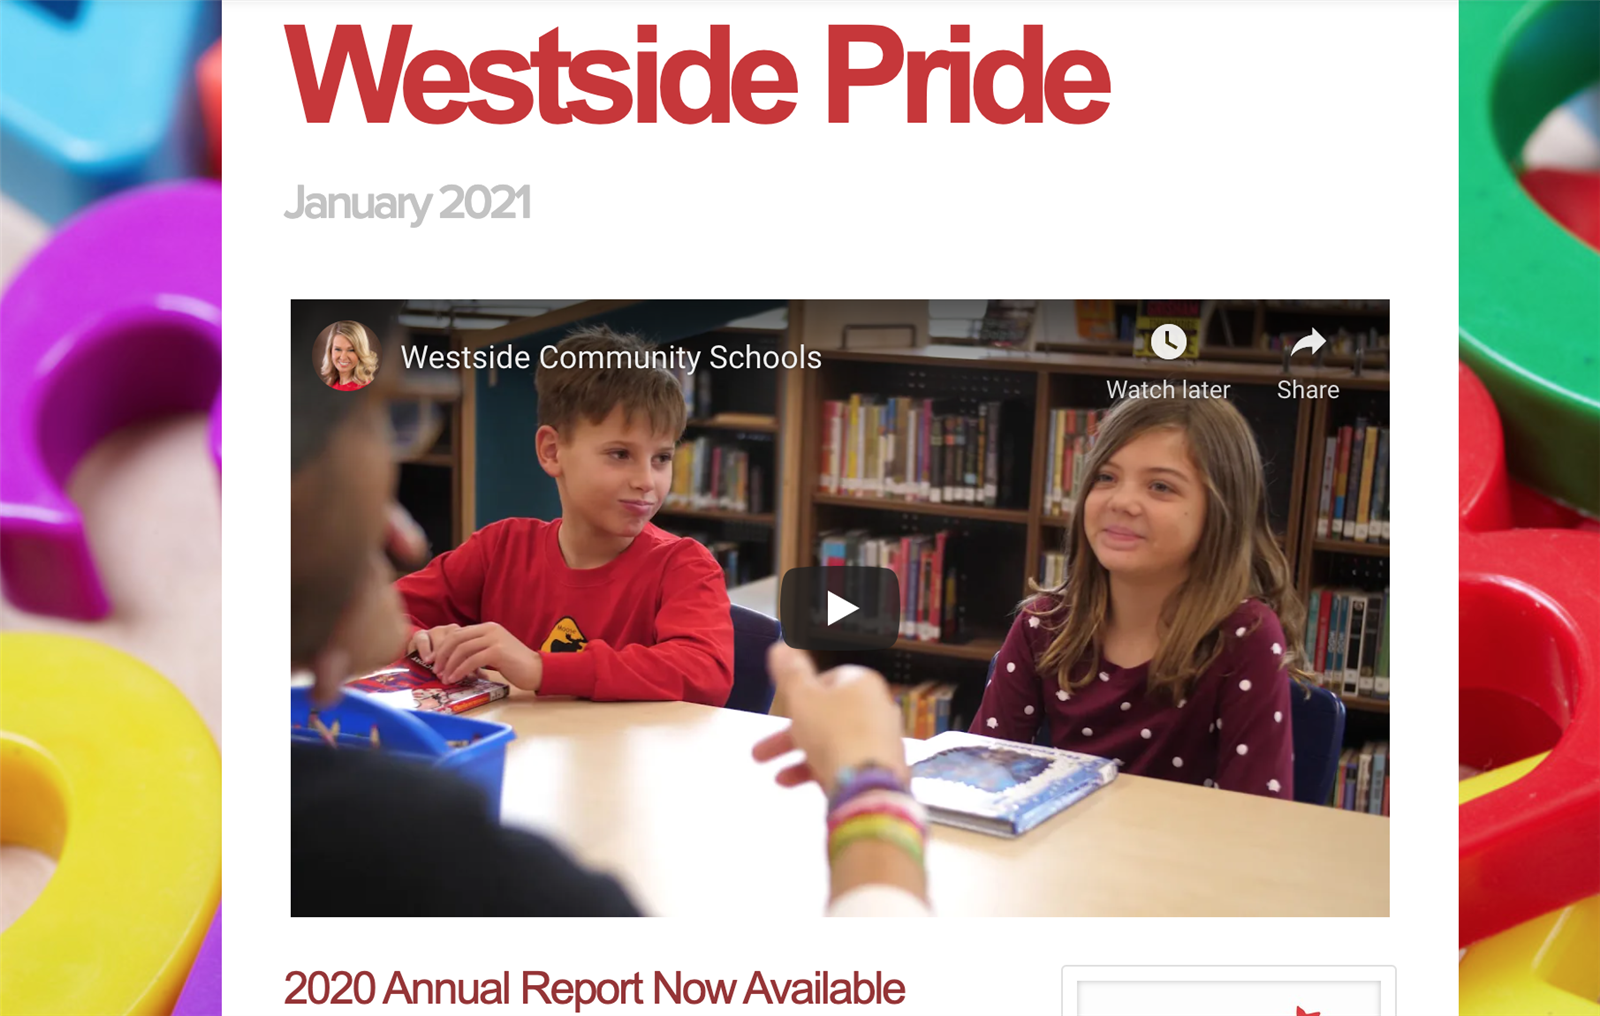 March 26, 2021 | New Westside Pride District Newsletter Now Available